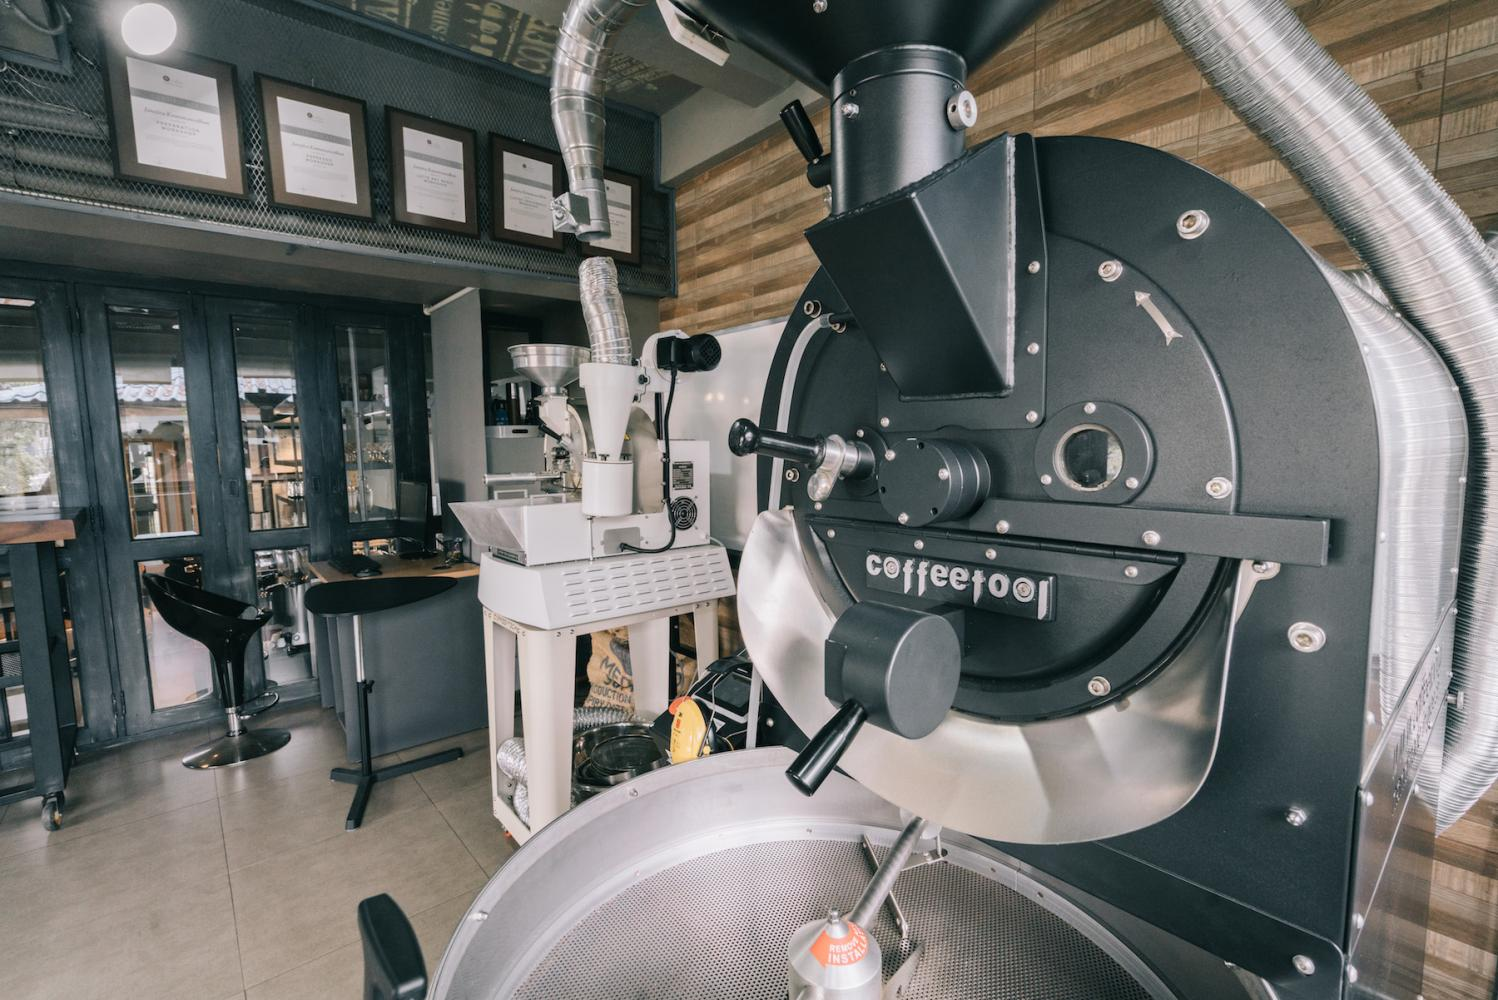 Expo invites all coffee lovers to join